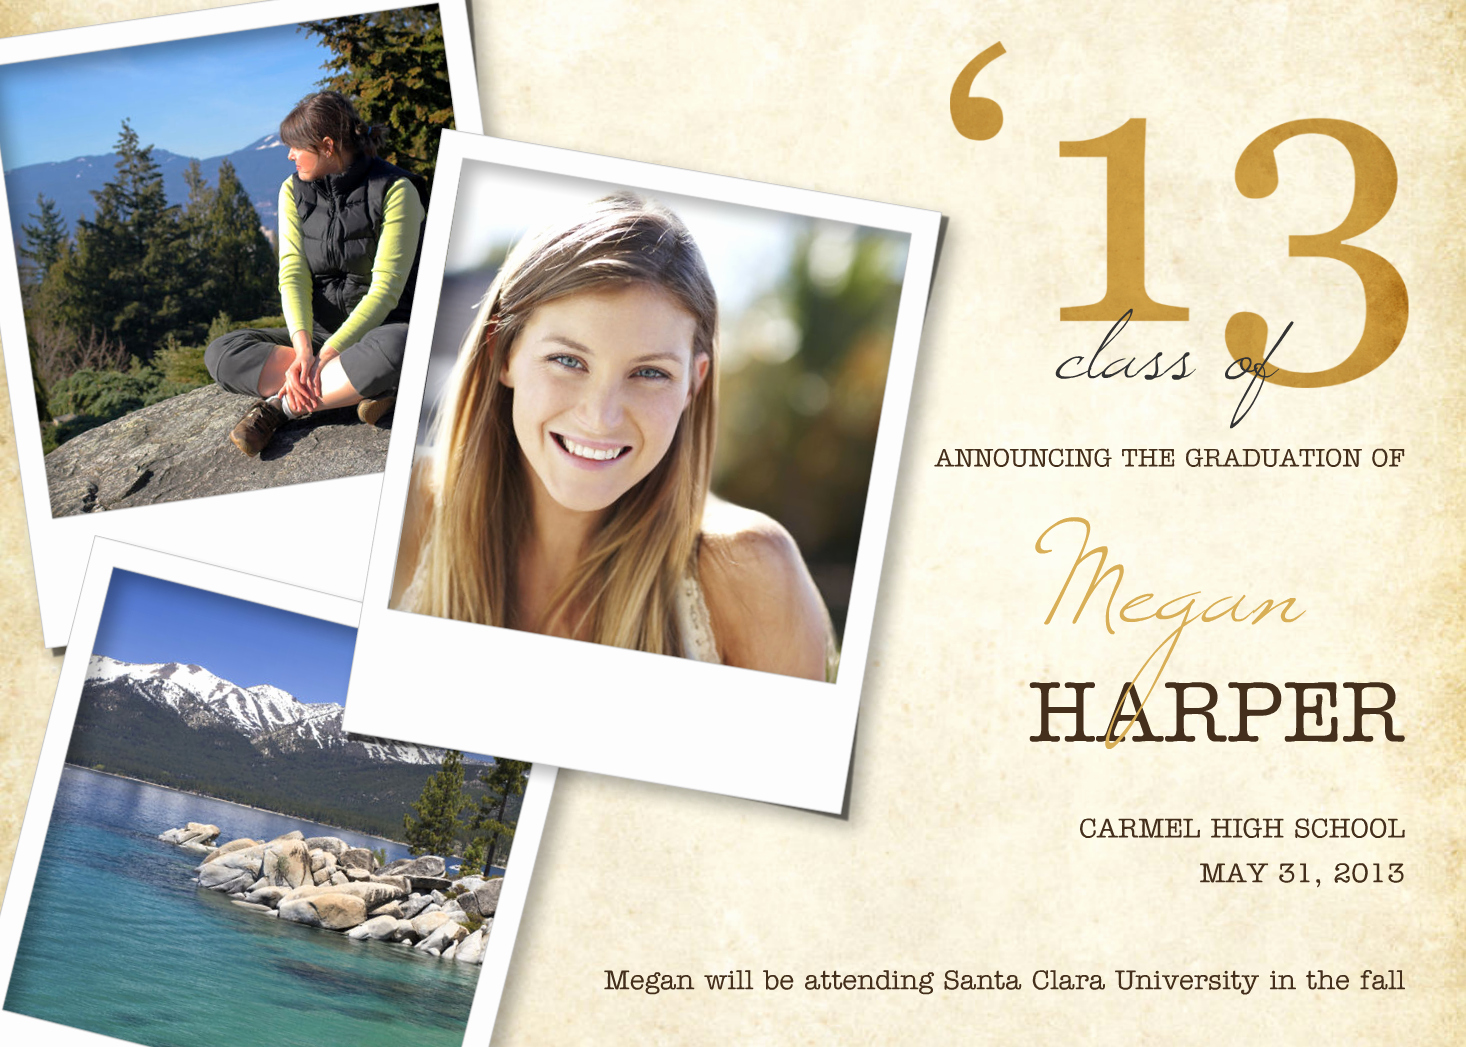 Graduation Invitation Card Ideas Lovely 5 Custom Graduation Announcement Ideas — Mixbook Inspiration